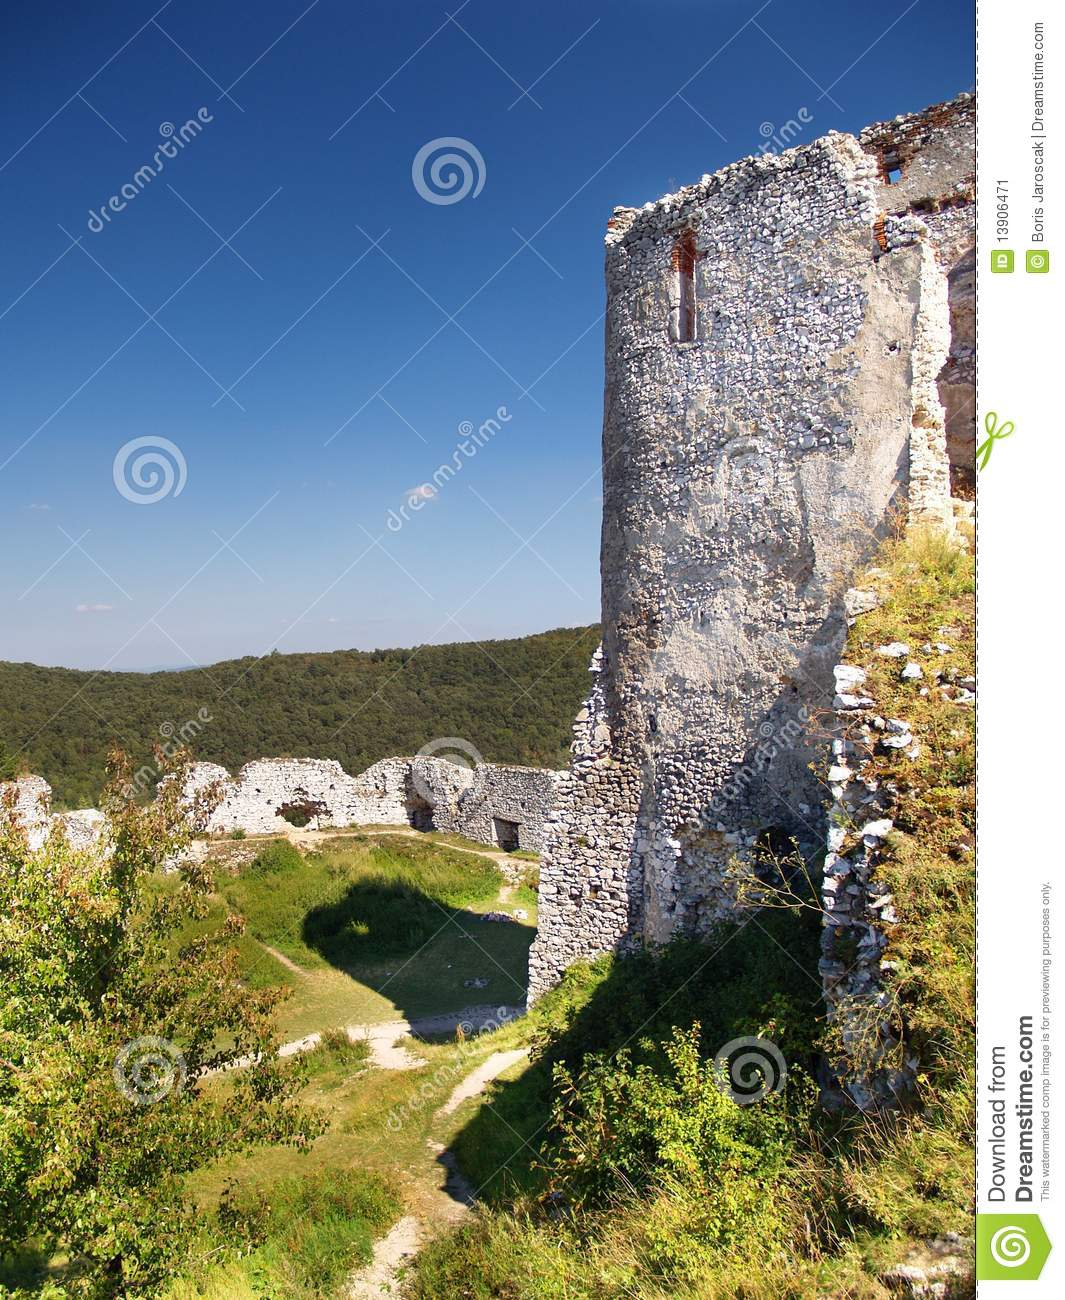 The Castle of Cachtice - Donjon